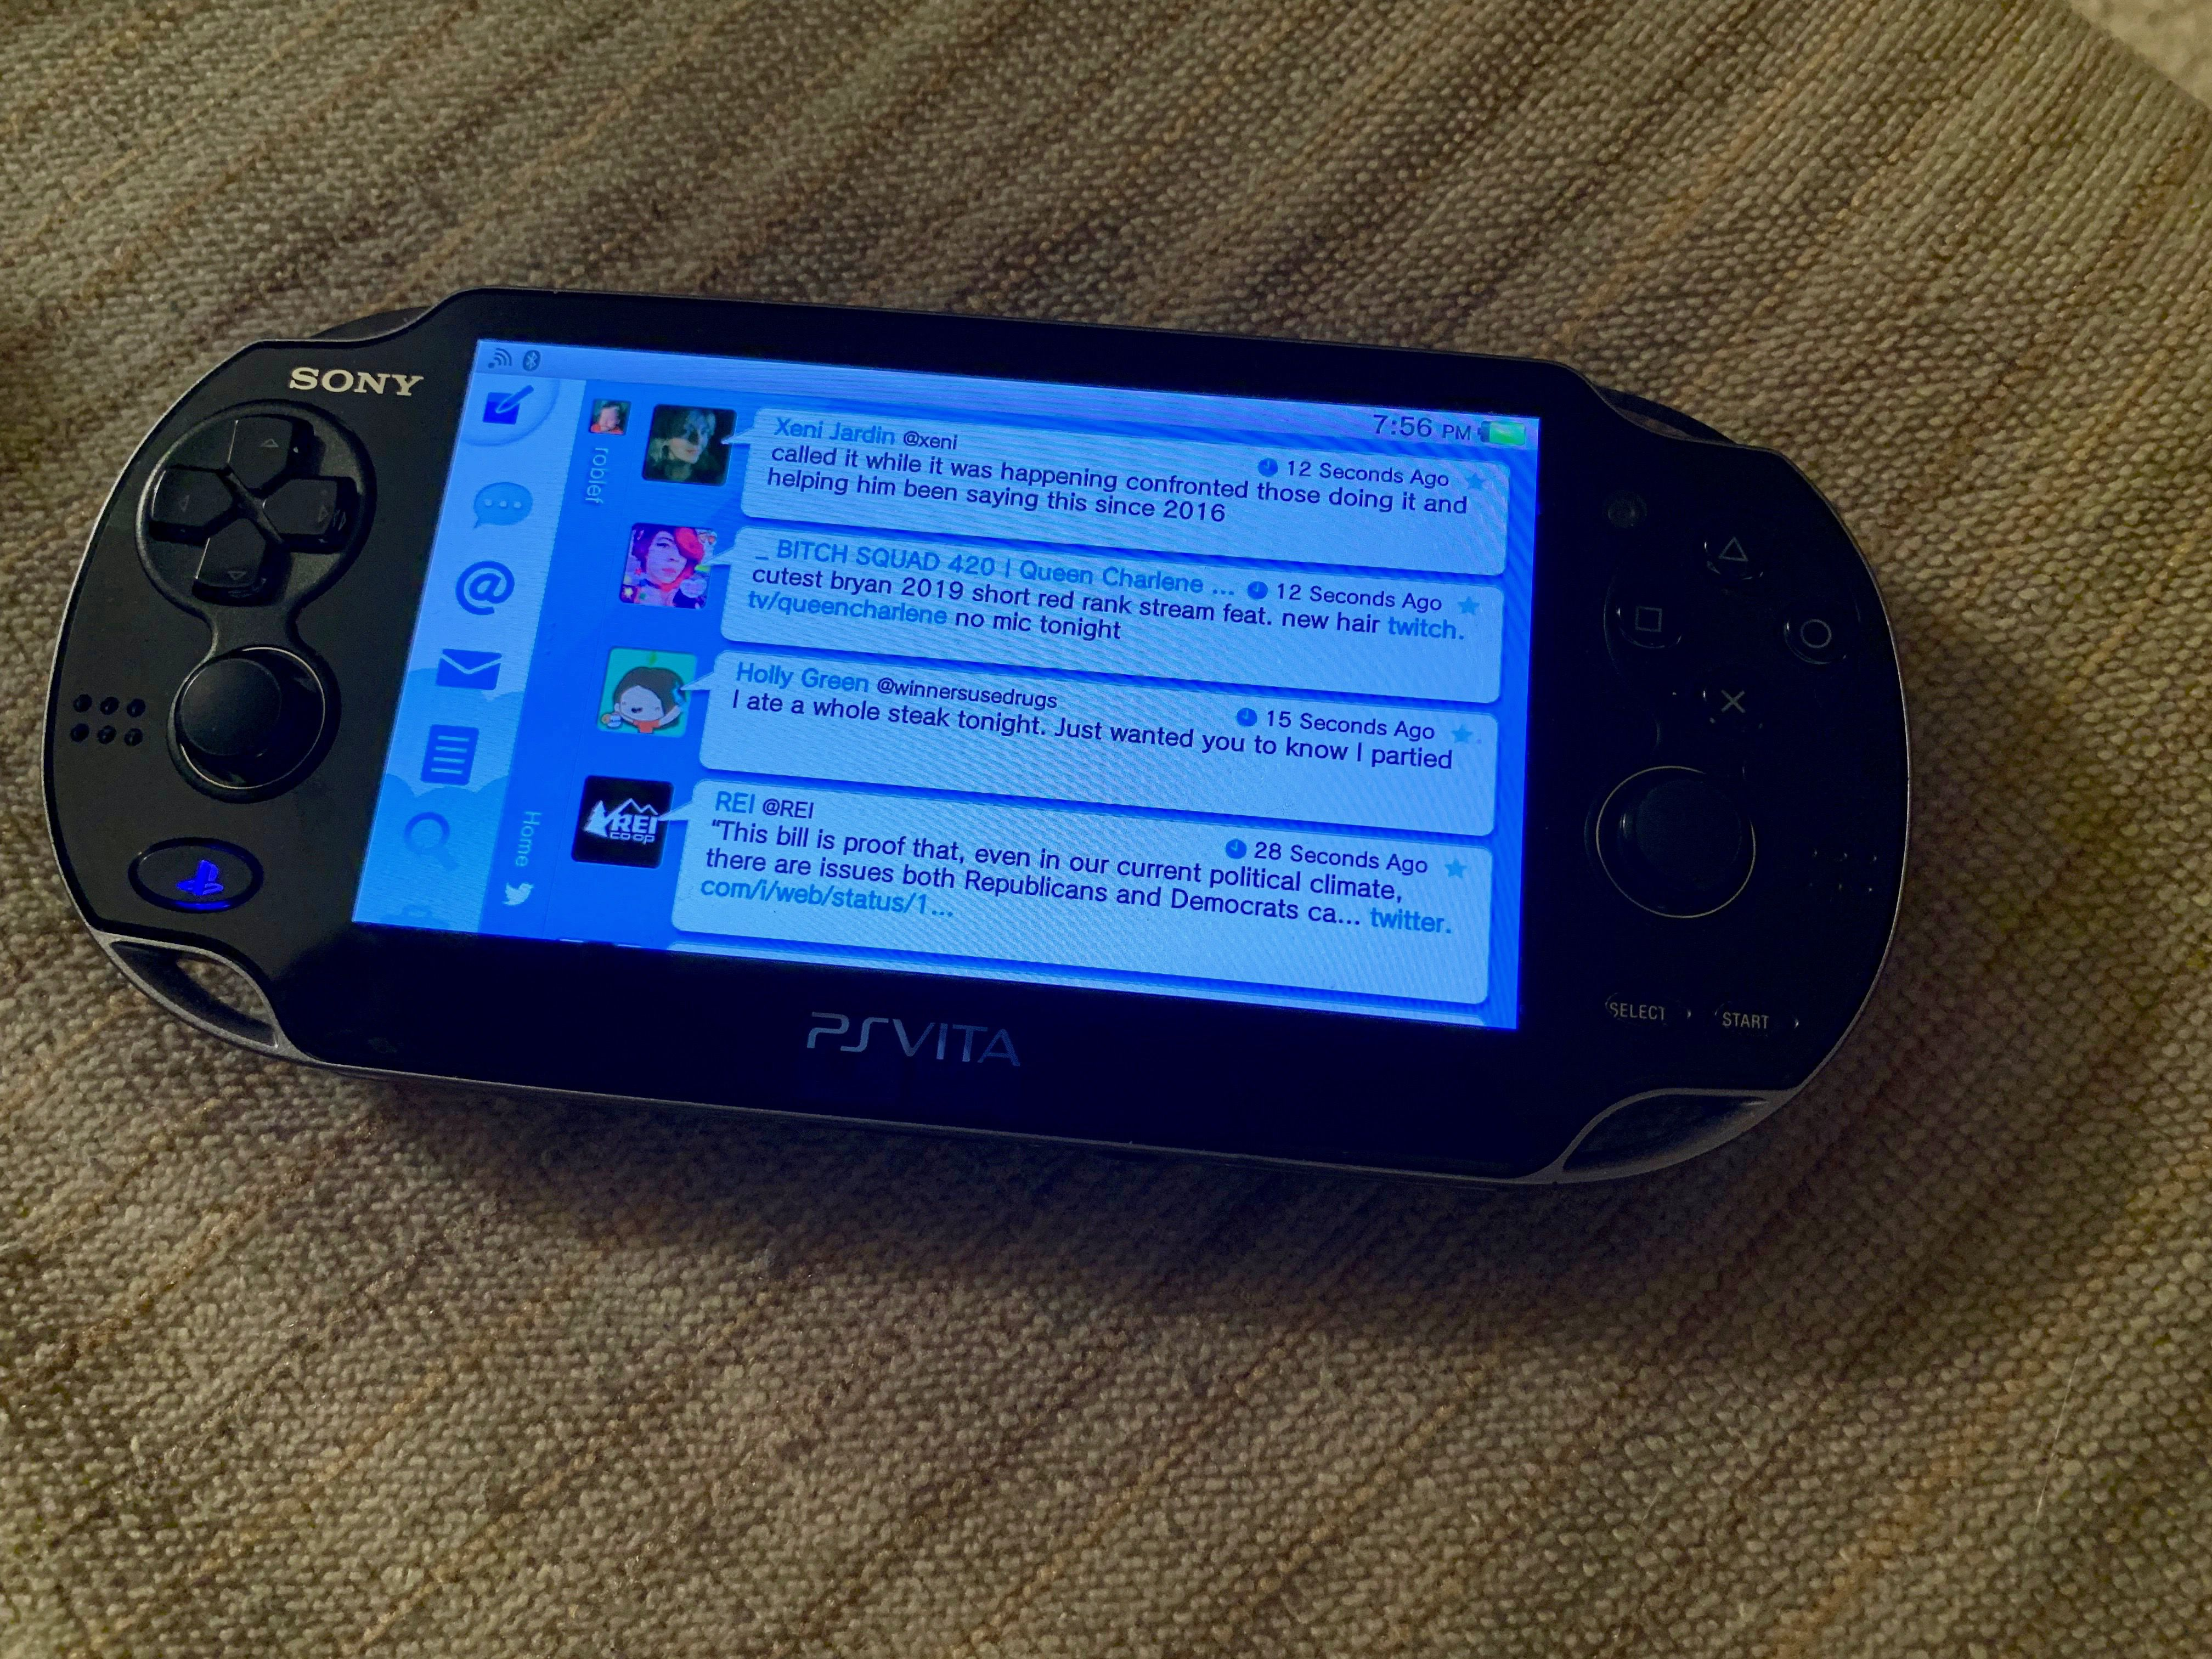 free gta 5 ps vita download no survey